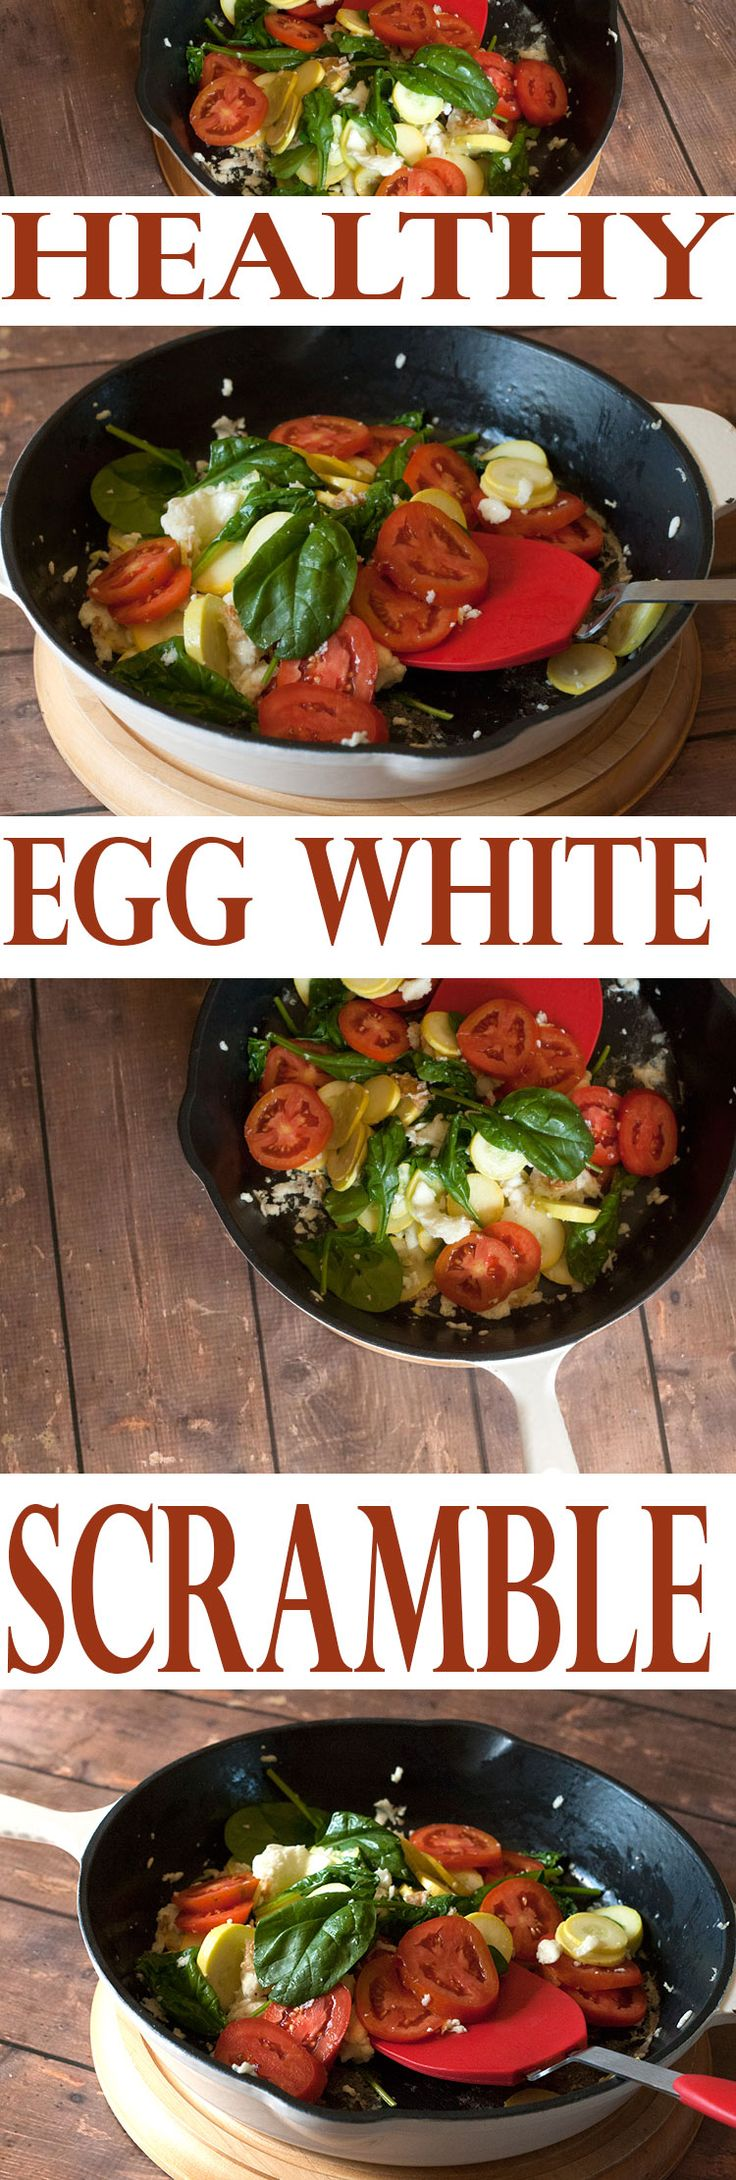 Healthy Egg White Scramble Recipe | AllSheCooks.com | At under 200 calories, this healthy recipe is perfect for any meal of the day and will fill you up. Great for a diet!